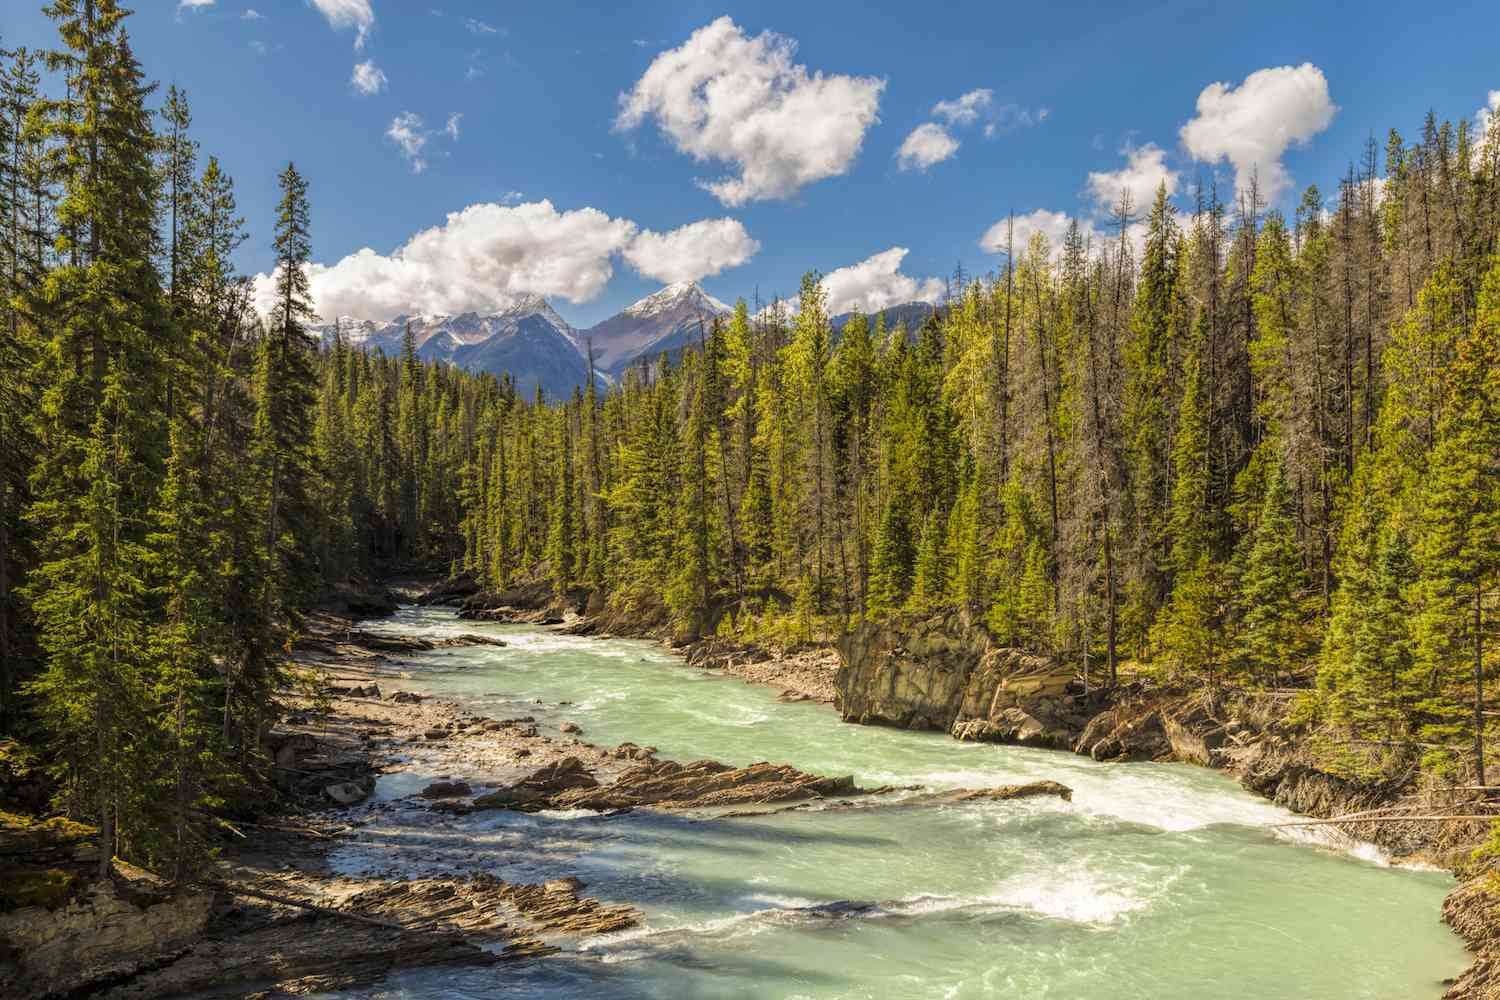 A river rushes through the middle of a coniferous forest in Yoho National Park